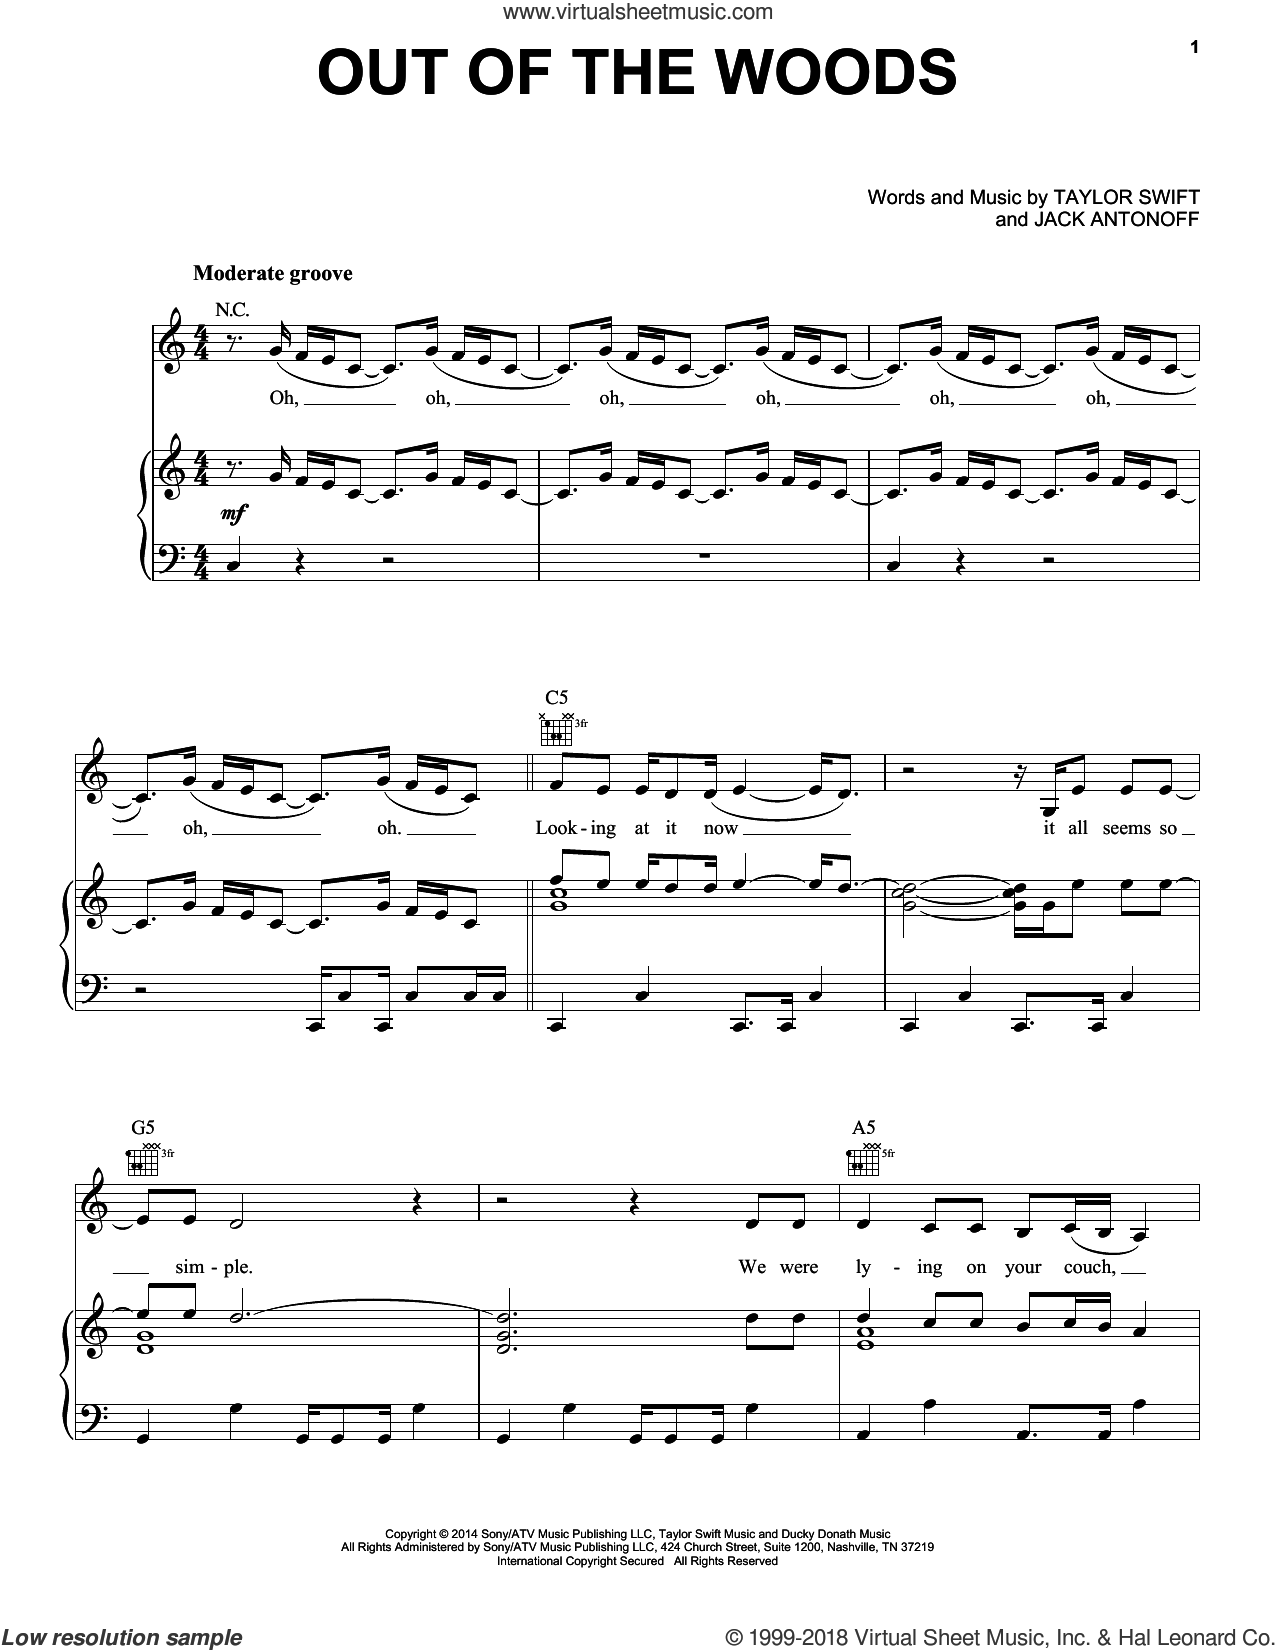 Out Of The Woods sheet music for voice, piano or guitar by Jack Antonoff and Taylor Swift. Score Image Preview.